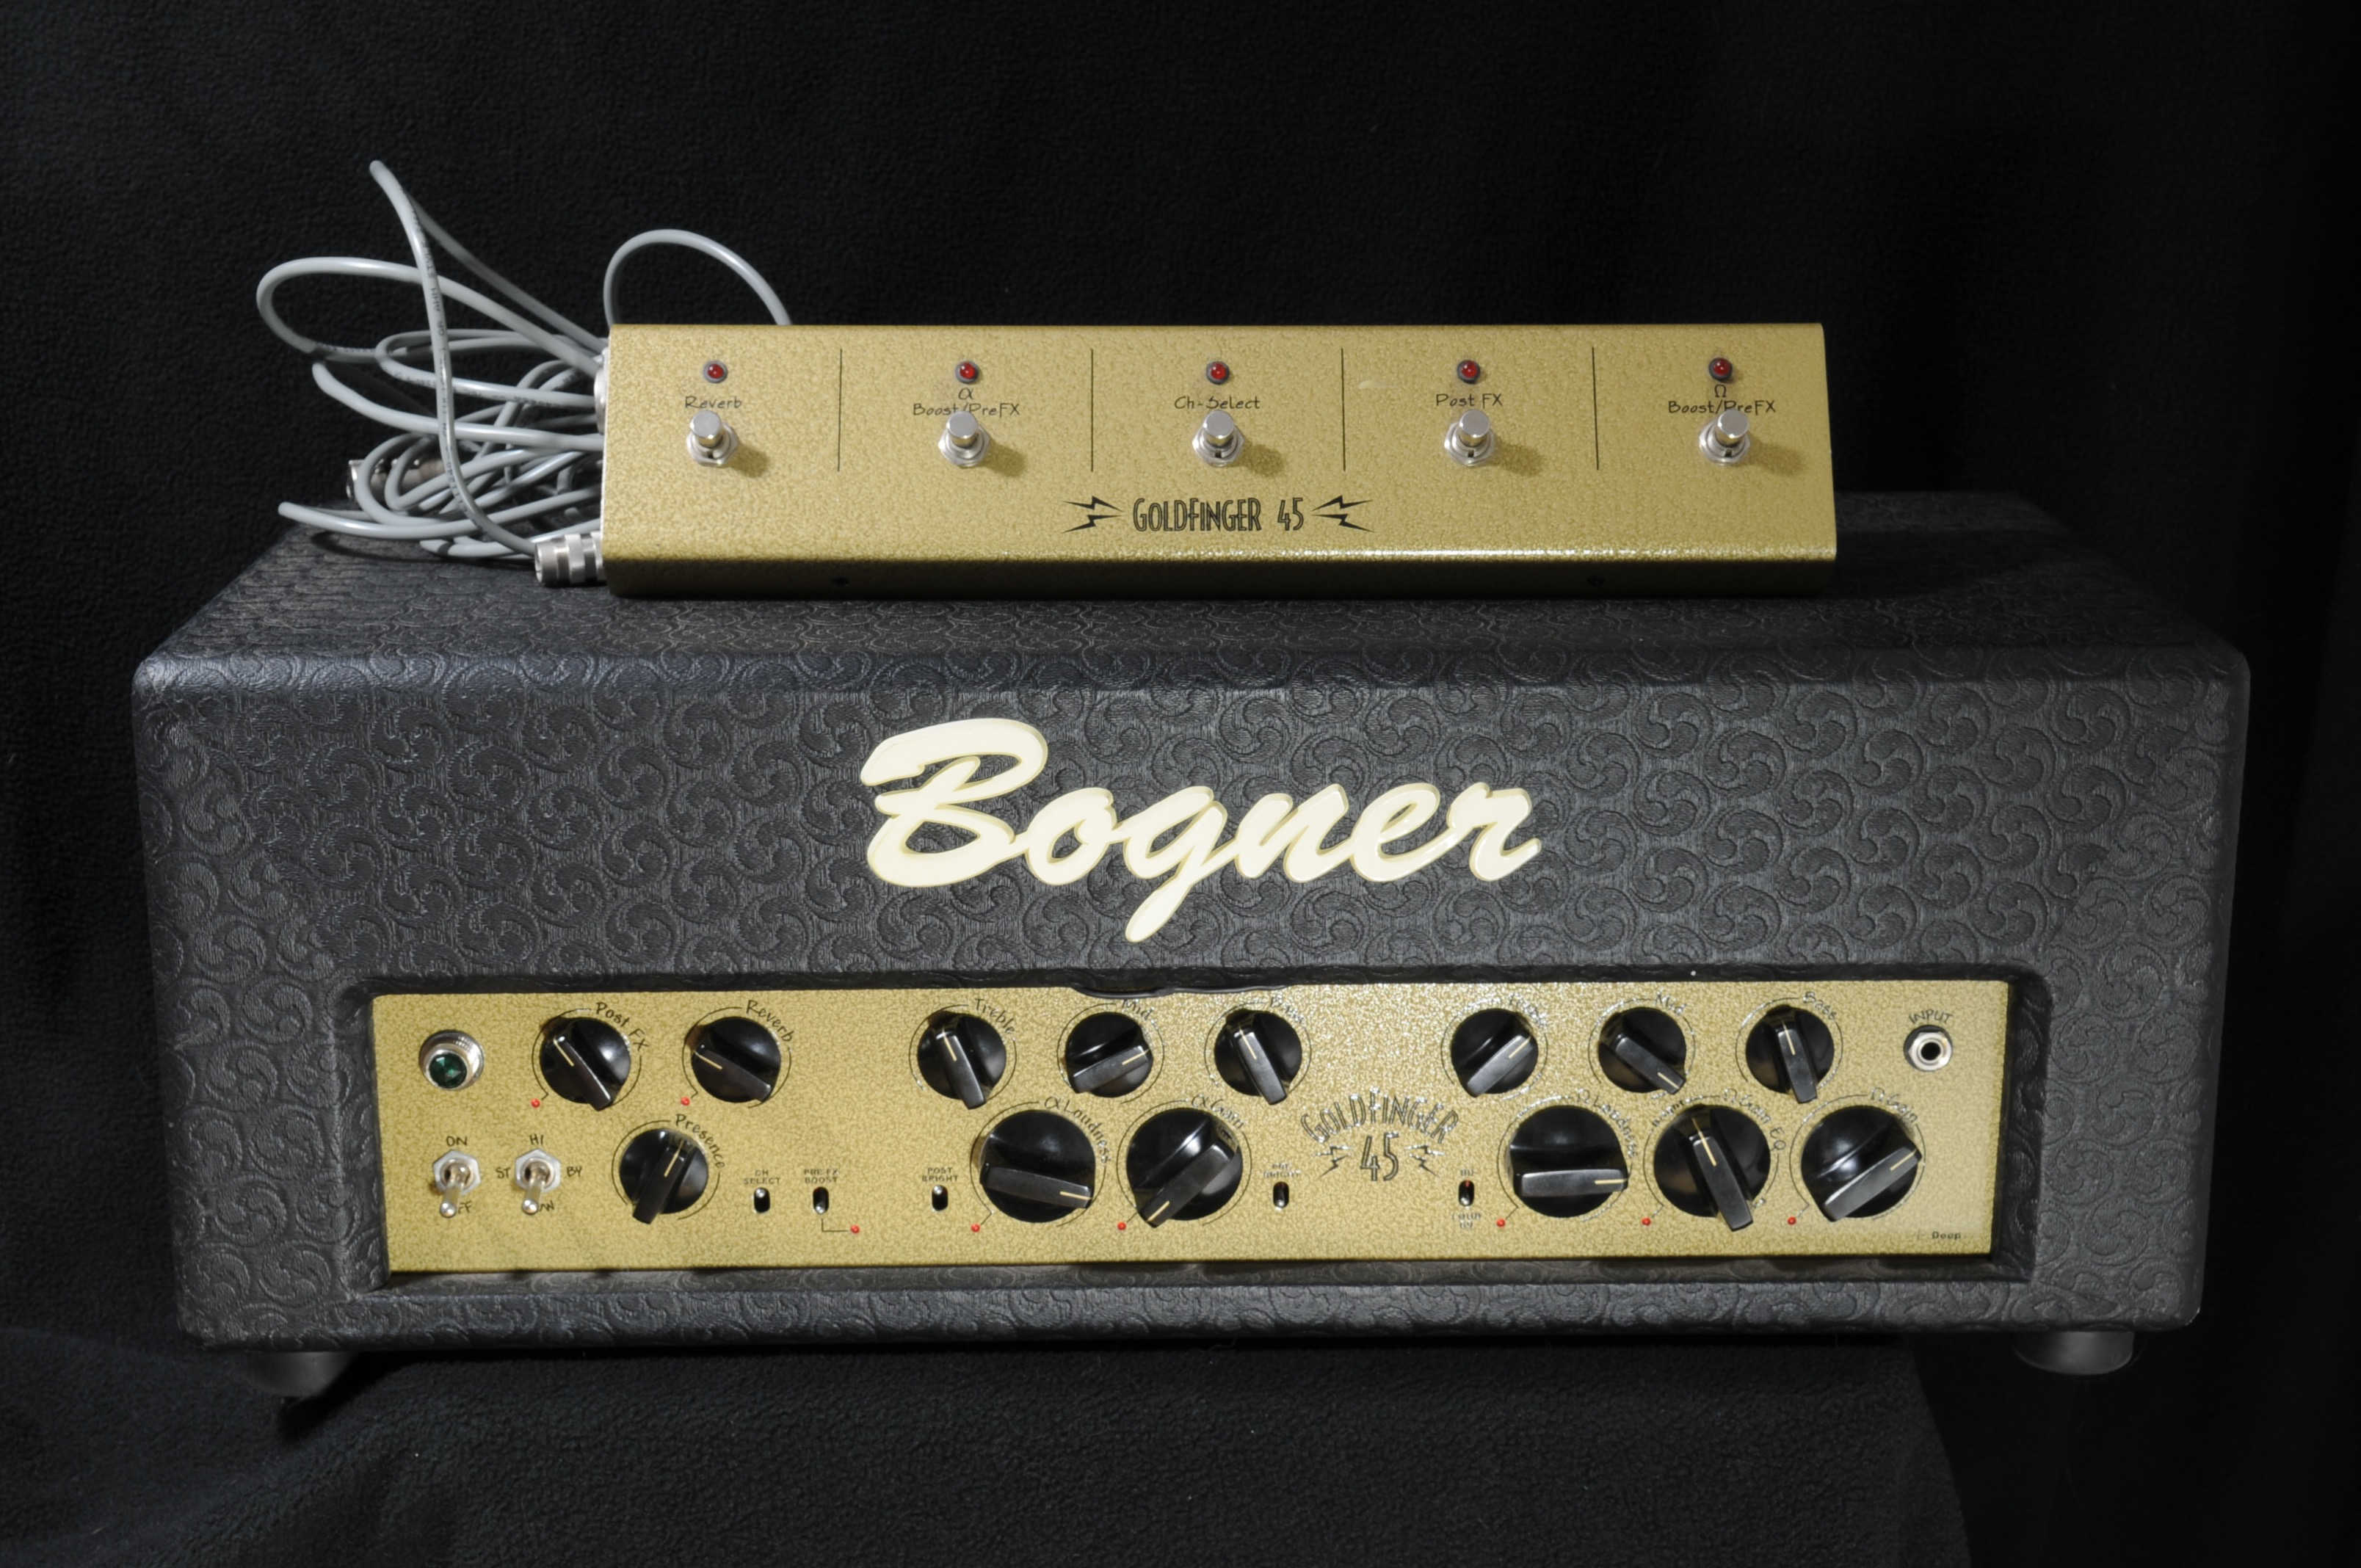 Bogner Goldfinger 45 w Footswitch